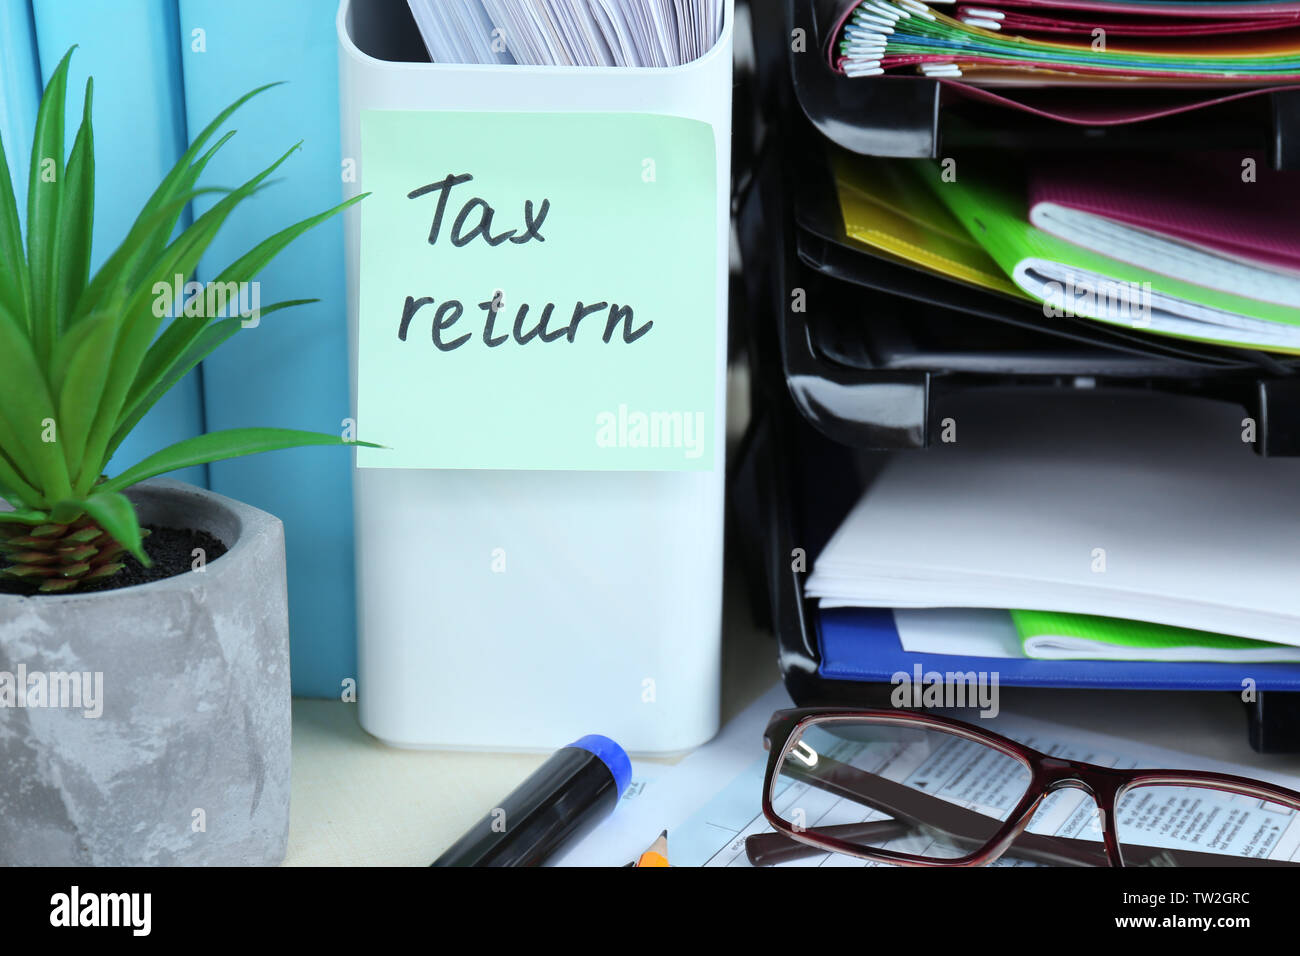 Note with TAX RETURN text and stationery on table - Stock Image